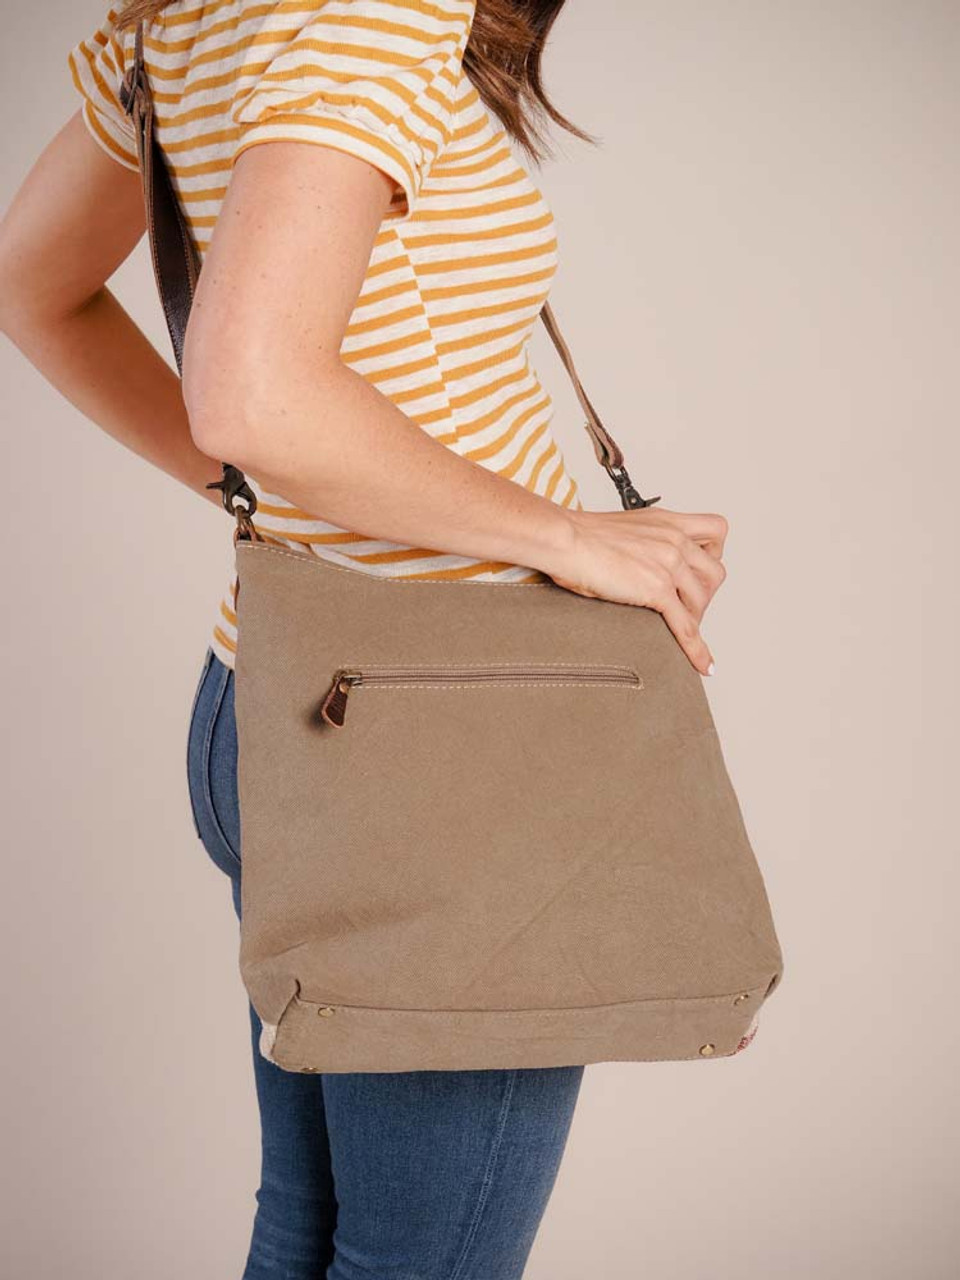 This shoulder bag is designed with a creative flair with vibrantly colored up-cycled rug on the front, sustainable military tent canvas on the rear and base, and leather accents.